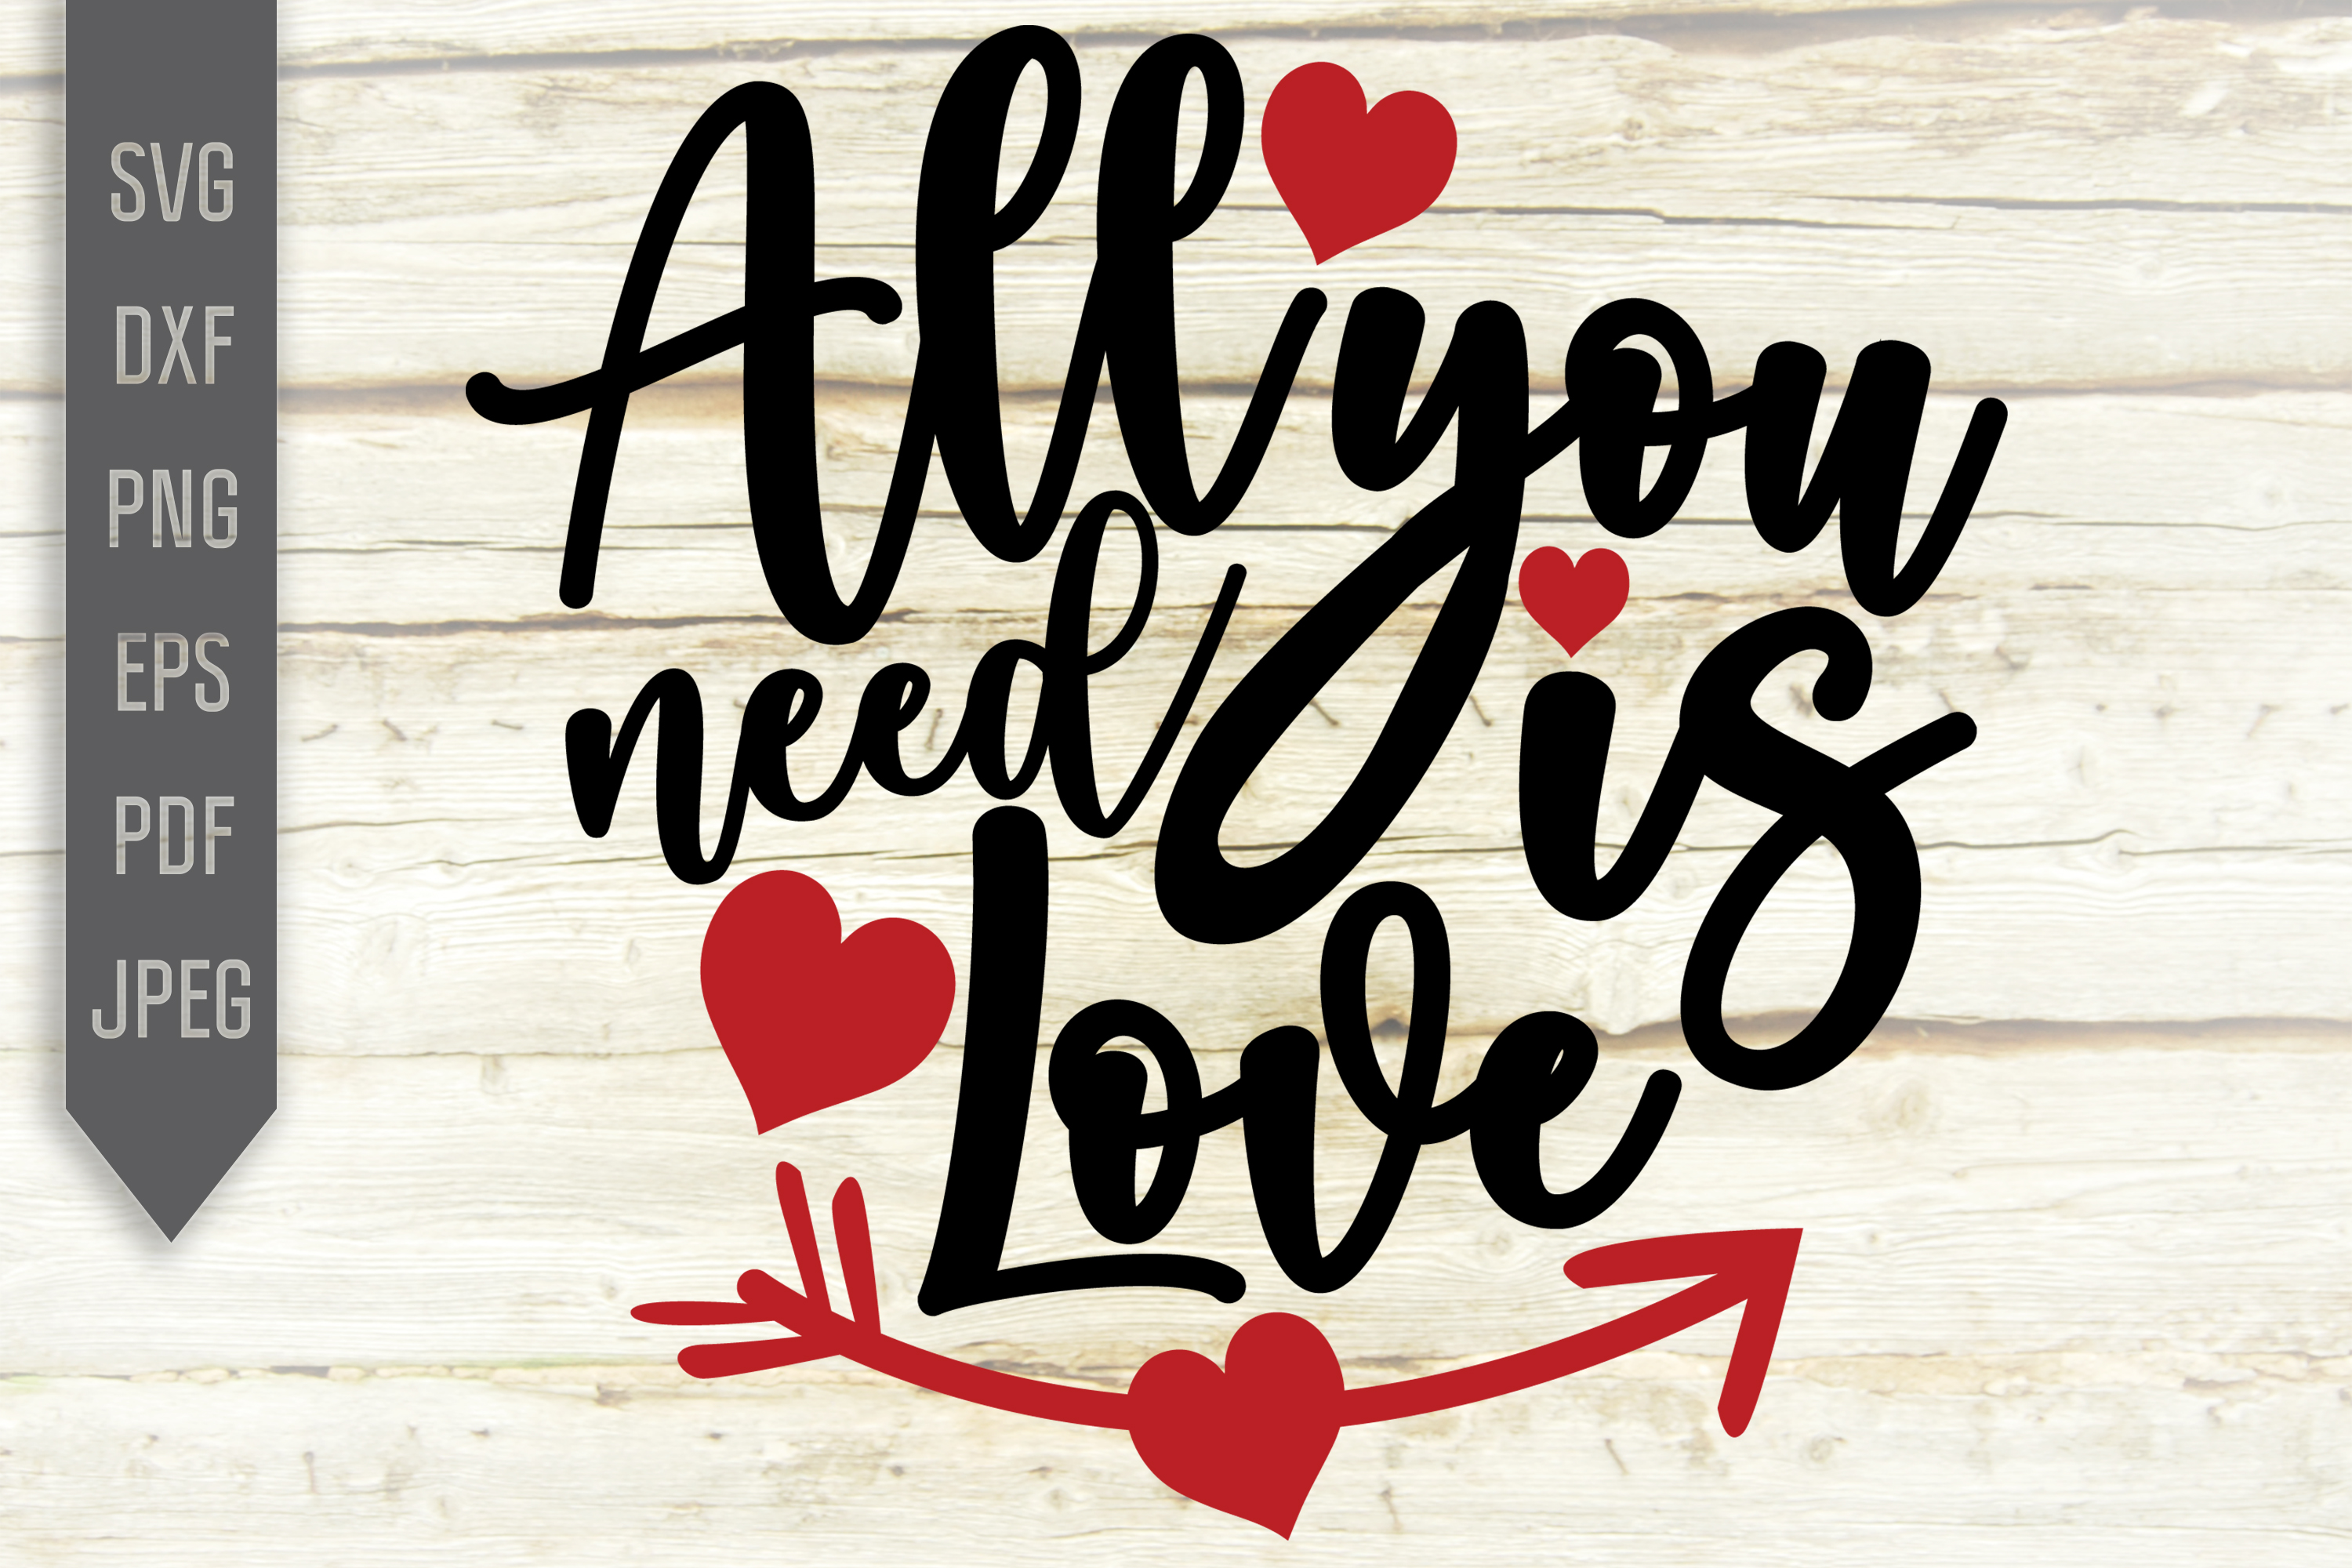 Download Free All You Need Is Love Svg Handwritten Graphic By Svglaboratory for Cricut Explore, Silhouette and other cutting machines.